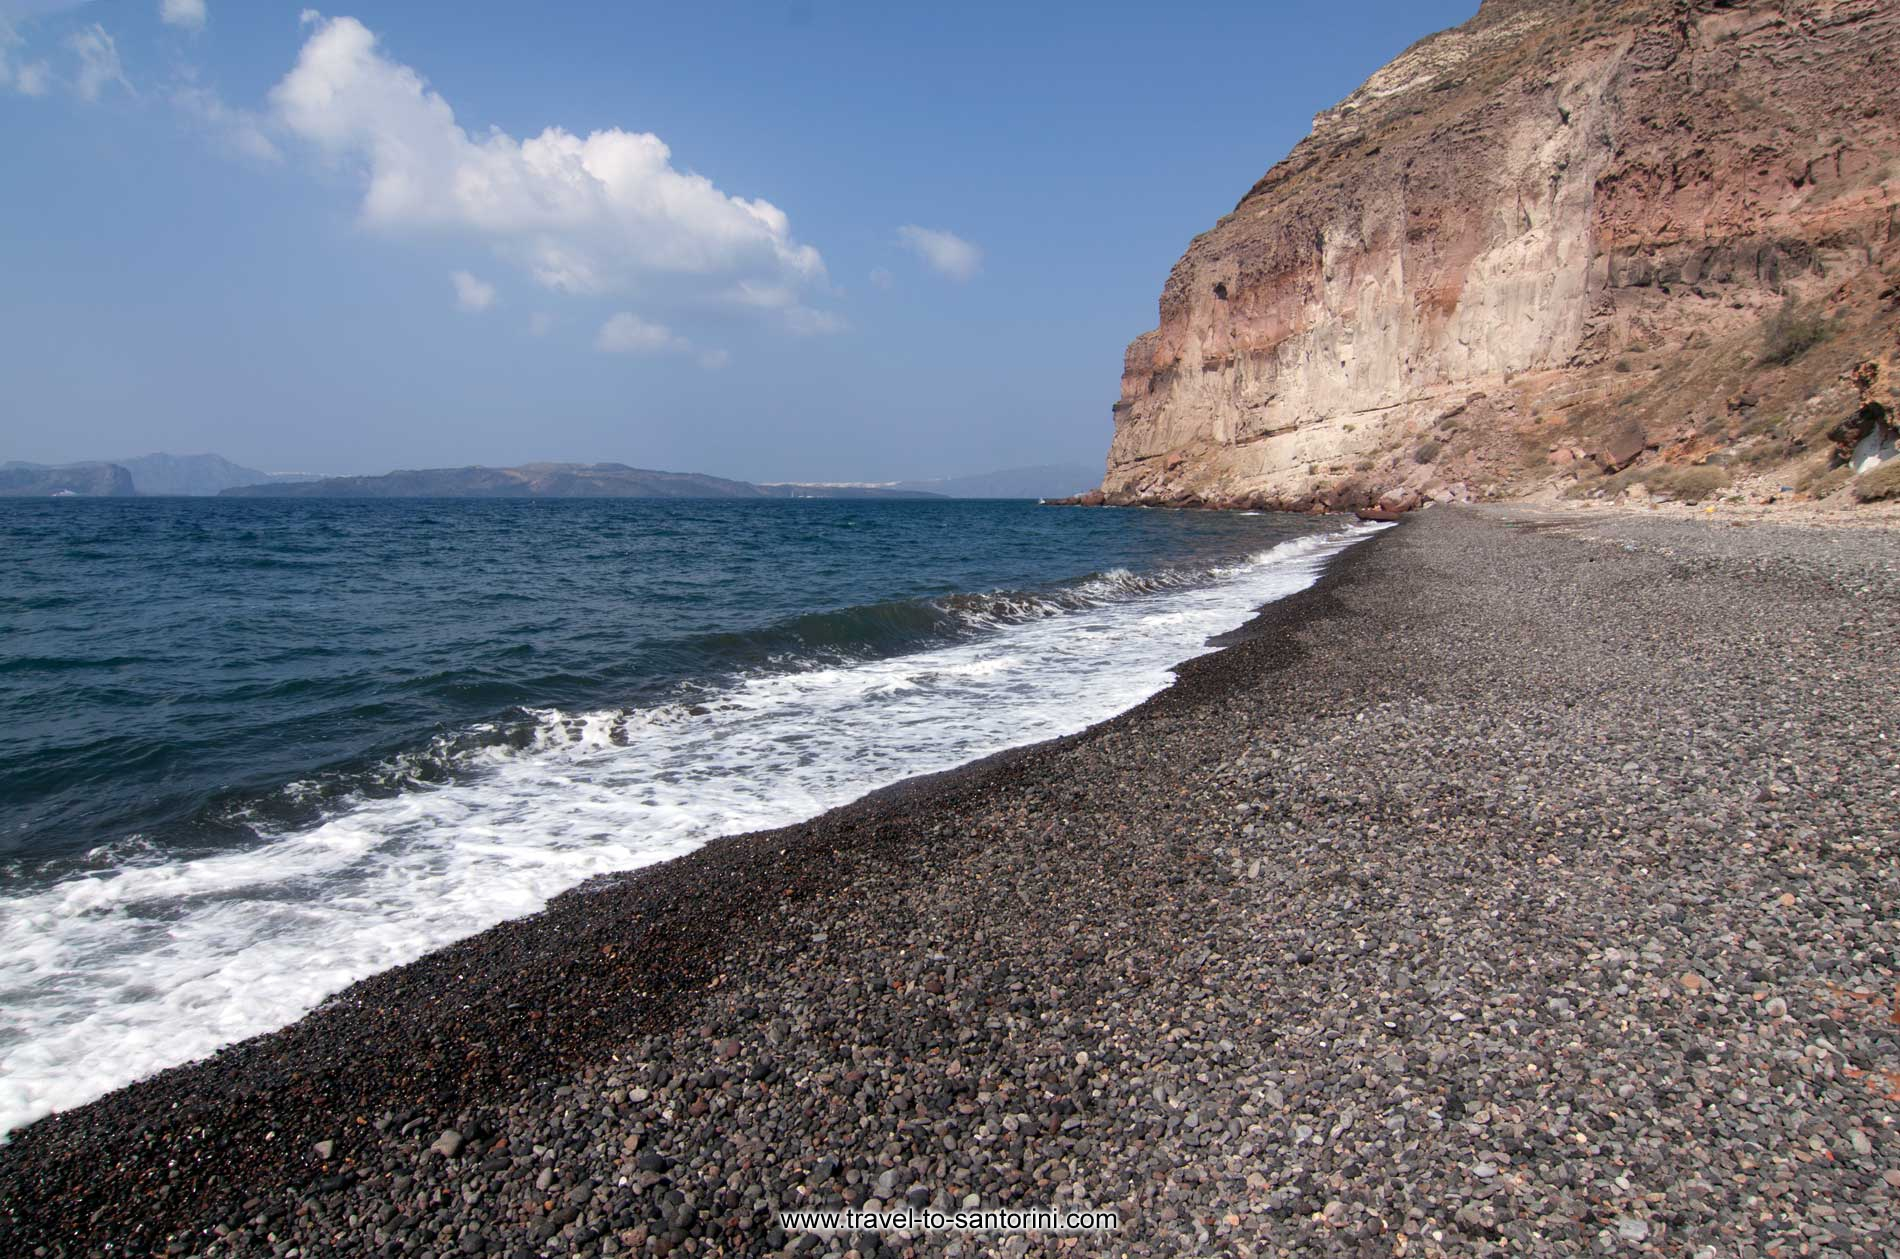 Tou Christou Ta Thermi - The secluded beach of Christou Ta Thermi inside the caldera bay